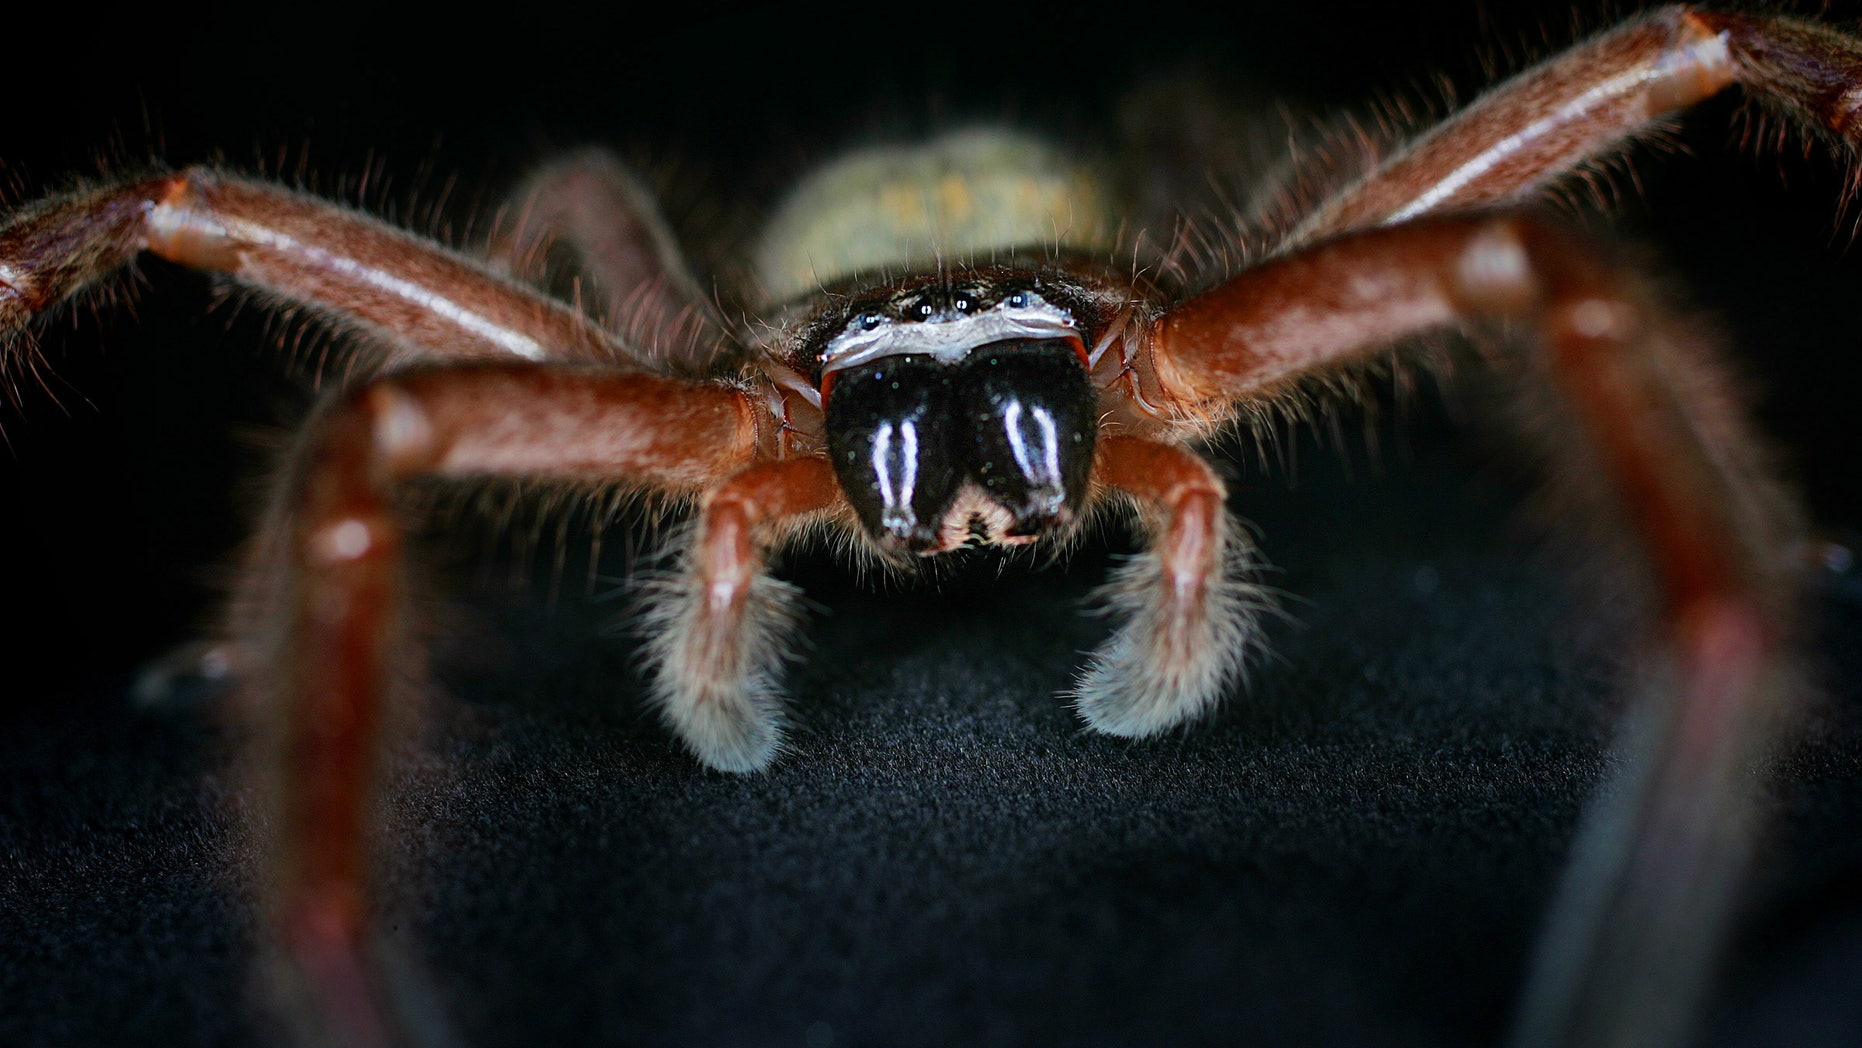 September 14, 2005 - FILE photo of a female Communal Huntsman spider  at Sydney's Taronga Zoo . Found very commonly outdoors, these native Australian spiders become more active in spring, as temperatures rise and their favored prey becomes more available.